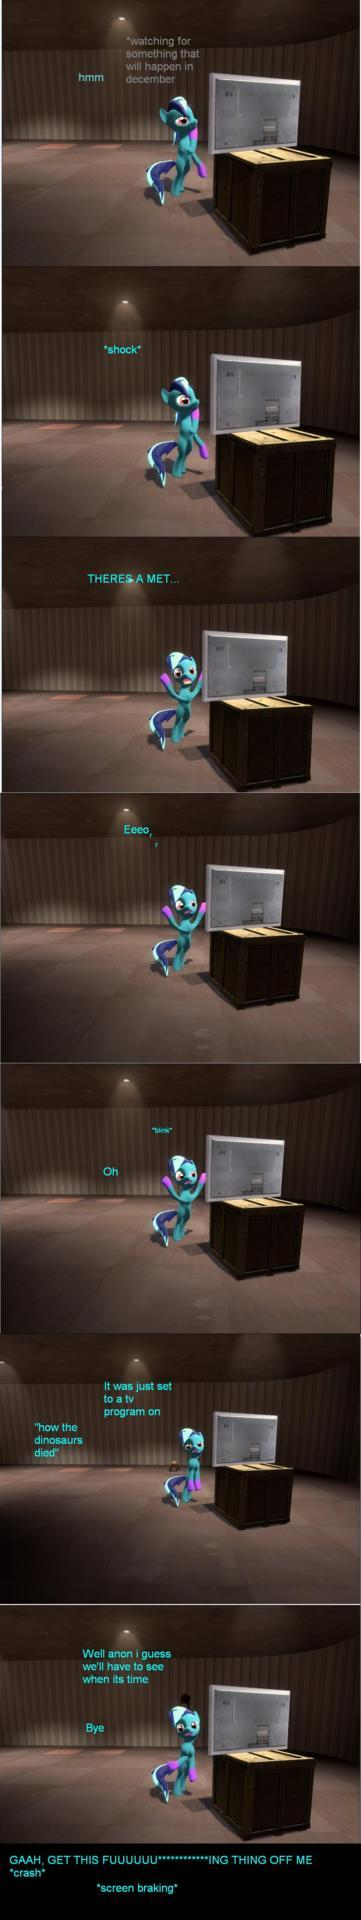 occ: so i just got a gmod back and answered it properly http://thenewpokeuman.deviantart.com/art/electrice-tumblur-answer-292929581  here to actualy see something >_<